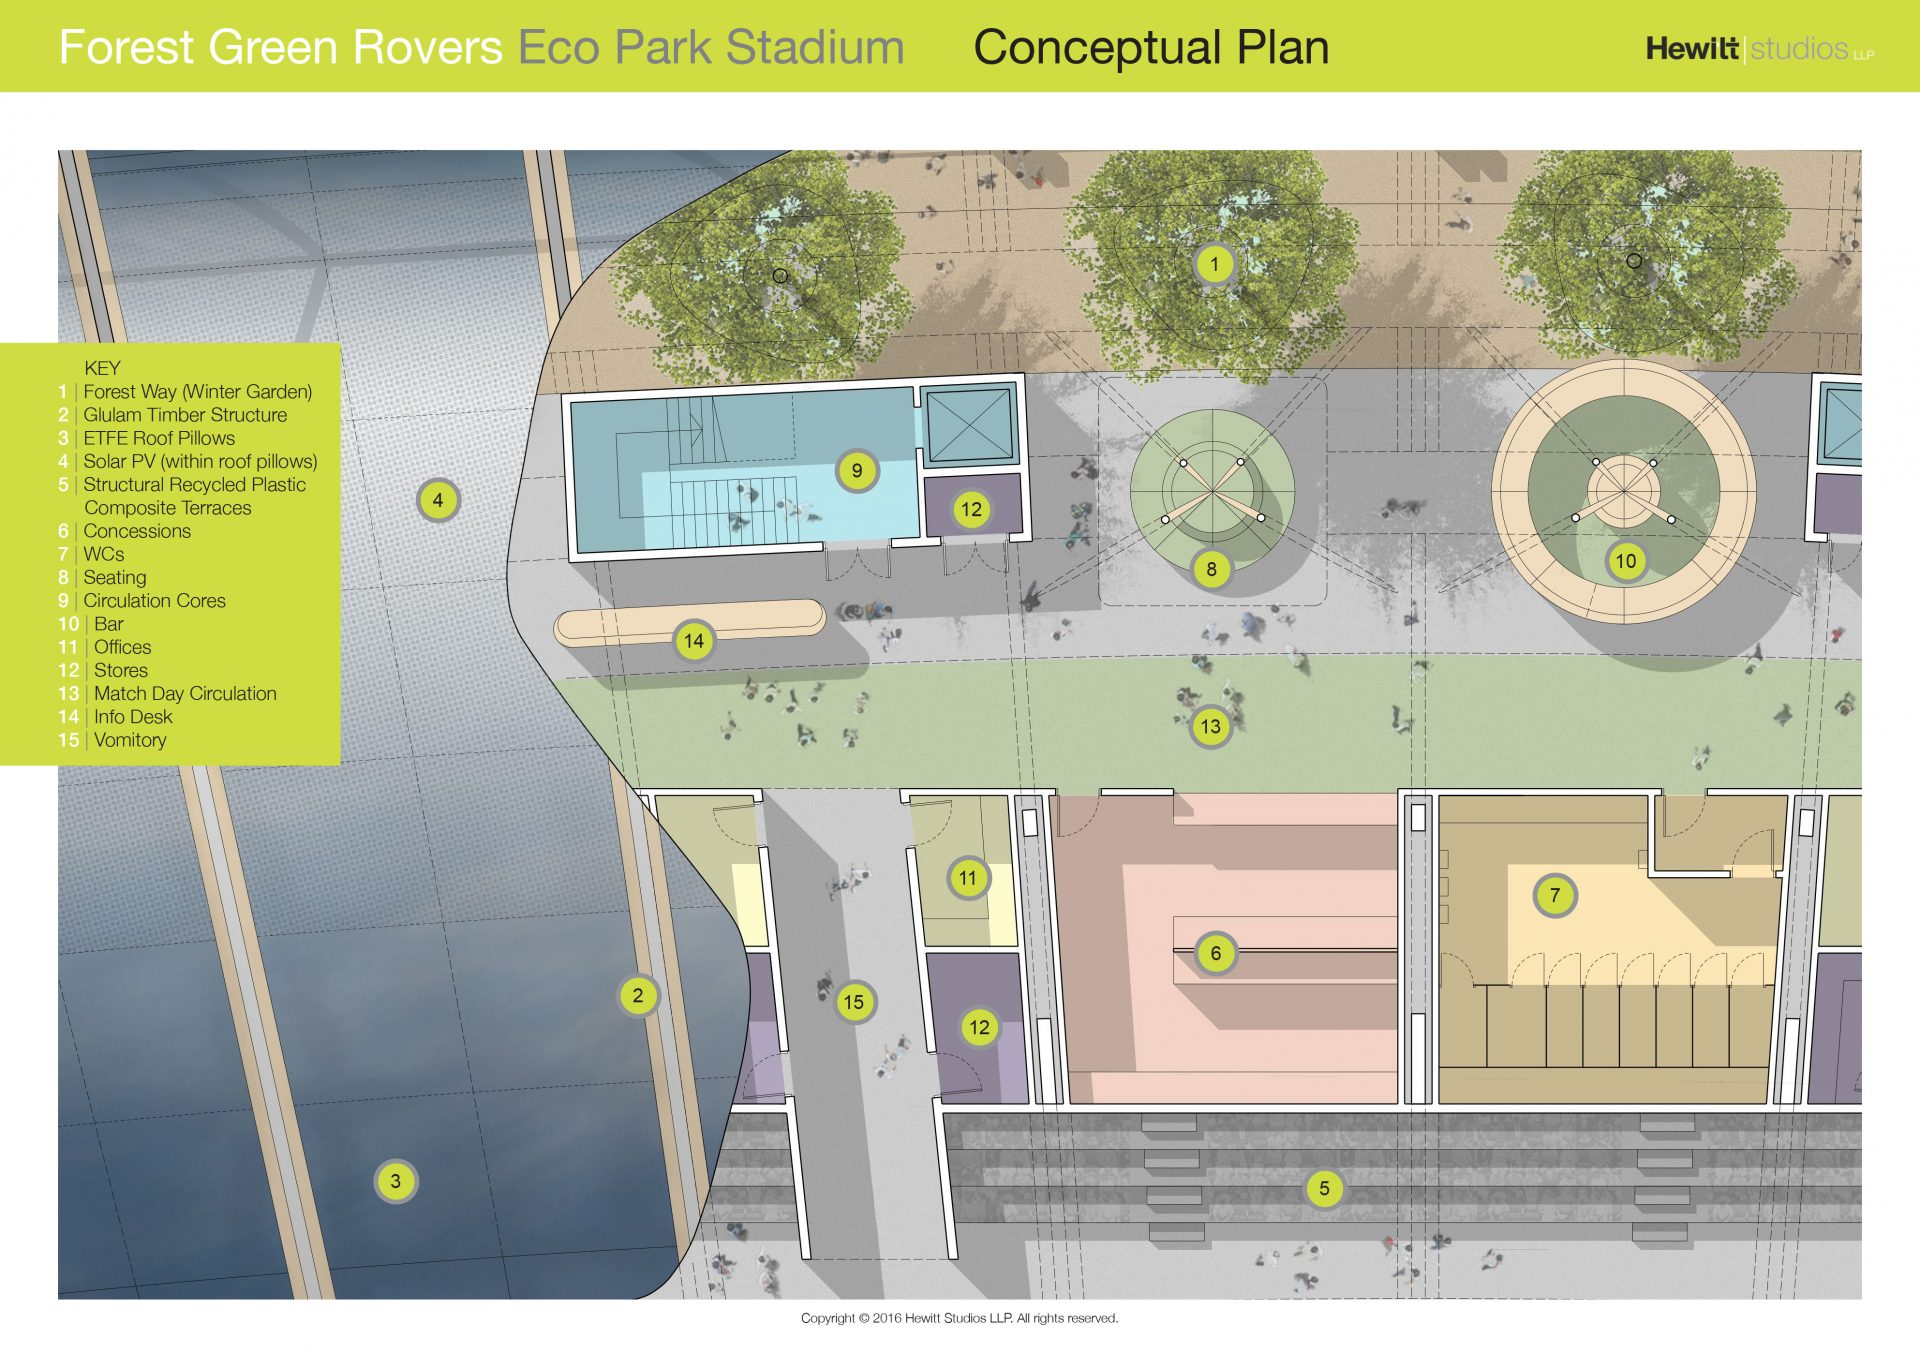 FGR Forest Green Rovers Ecotricity Eco Park Stadium Plan Timber Frame Atrium Pods Trees